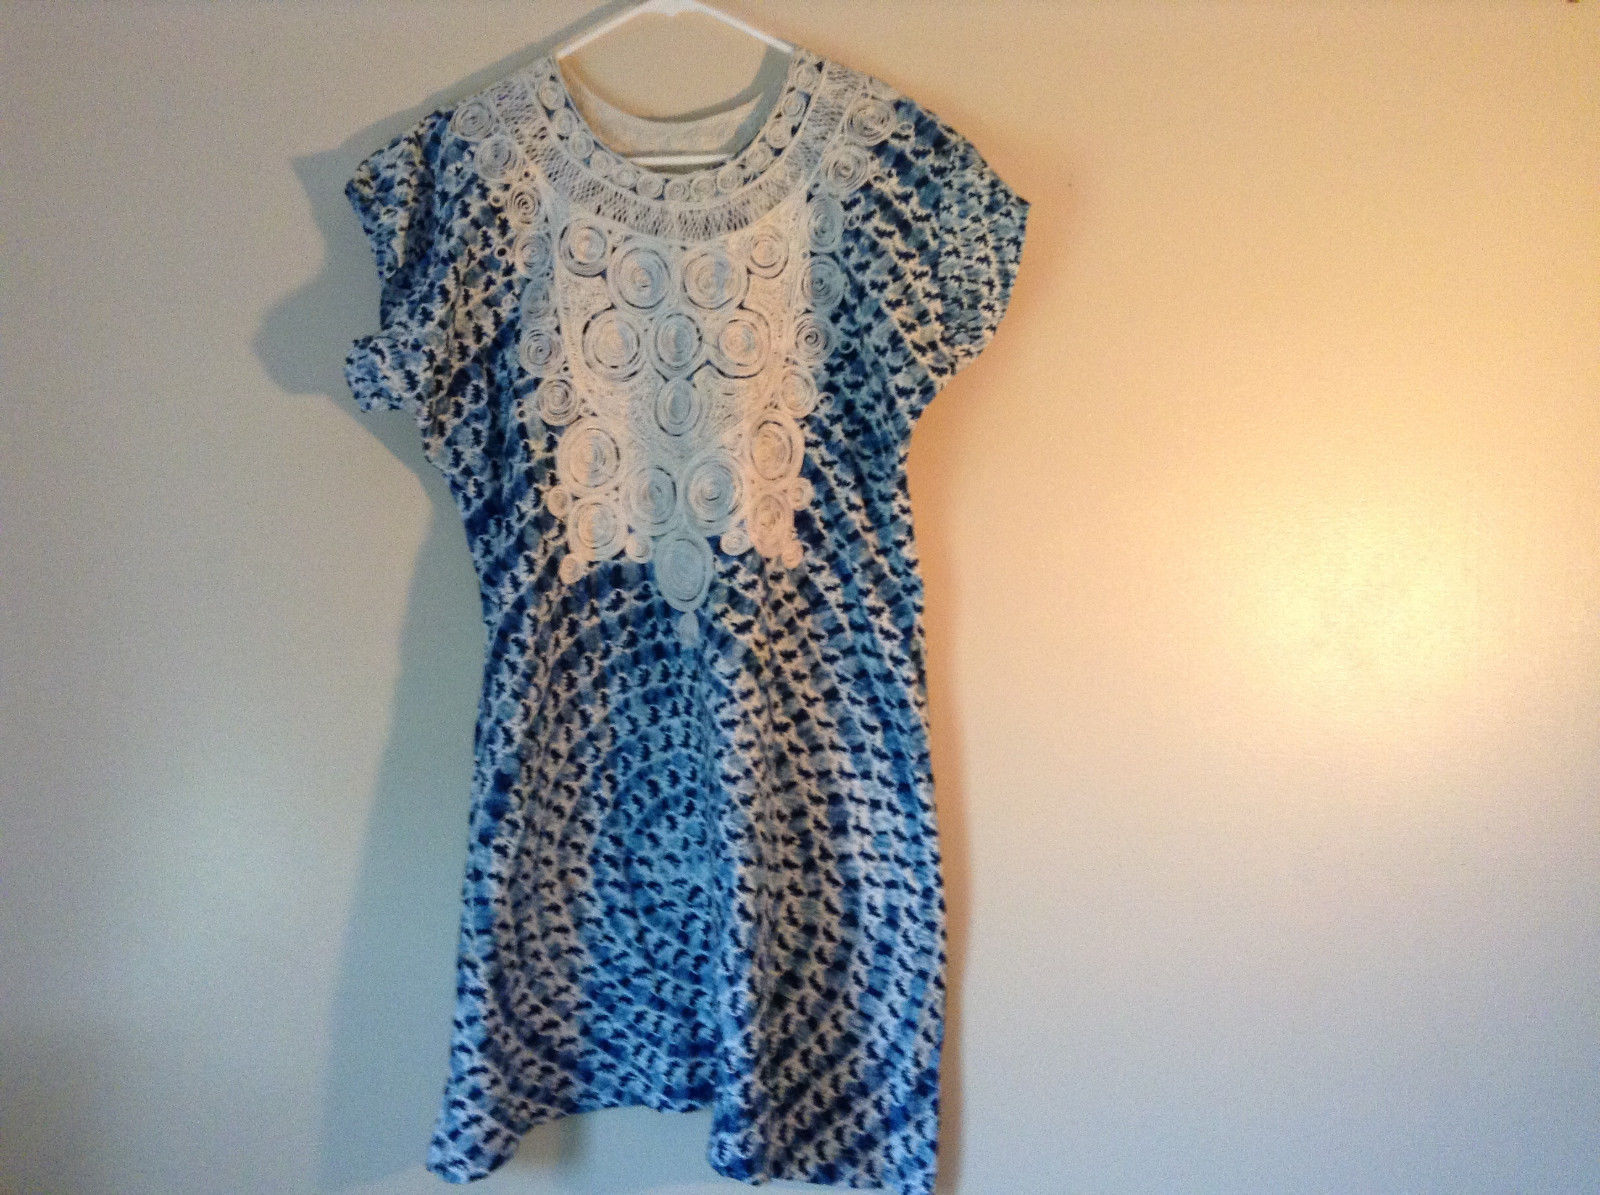 Handmade Dress Blue with White Design and White Circles on Top NO TAG